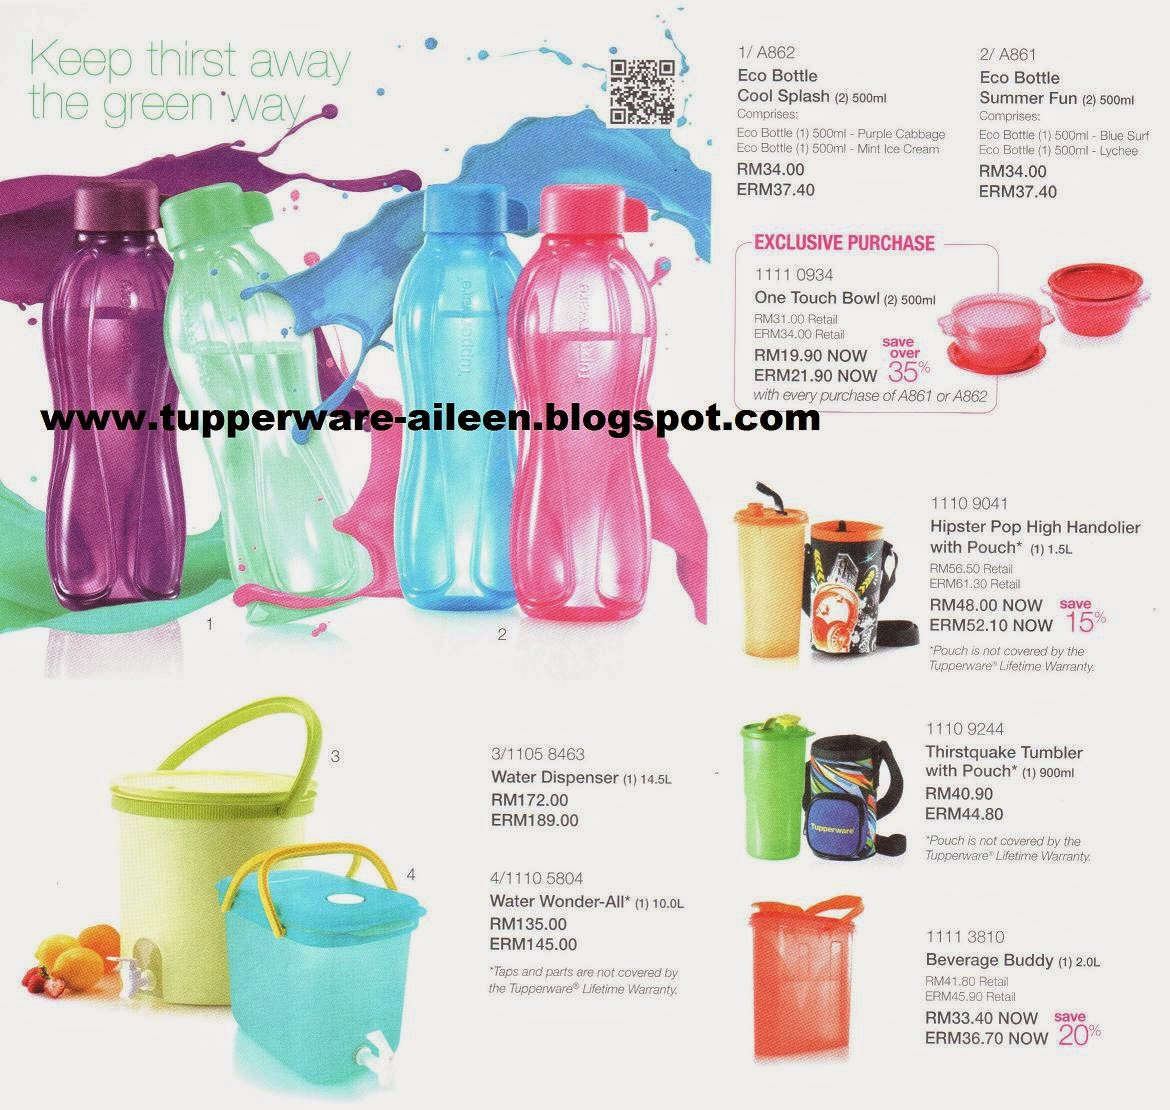 Tupperware Aileen May 2014 Gelas Plastik Tutup Tumbler Colorfull Has Opened Up An Exciting Colourful June Campaign Catalogue Effective 1 30 To Set The Momentum Towards This Happy